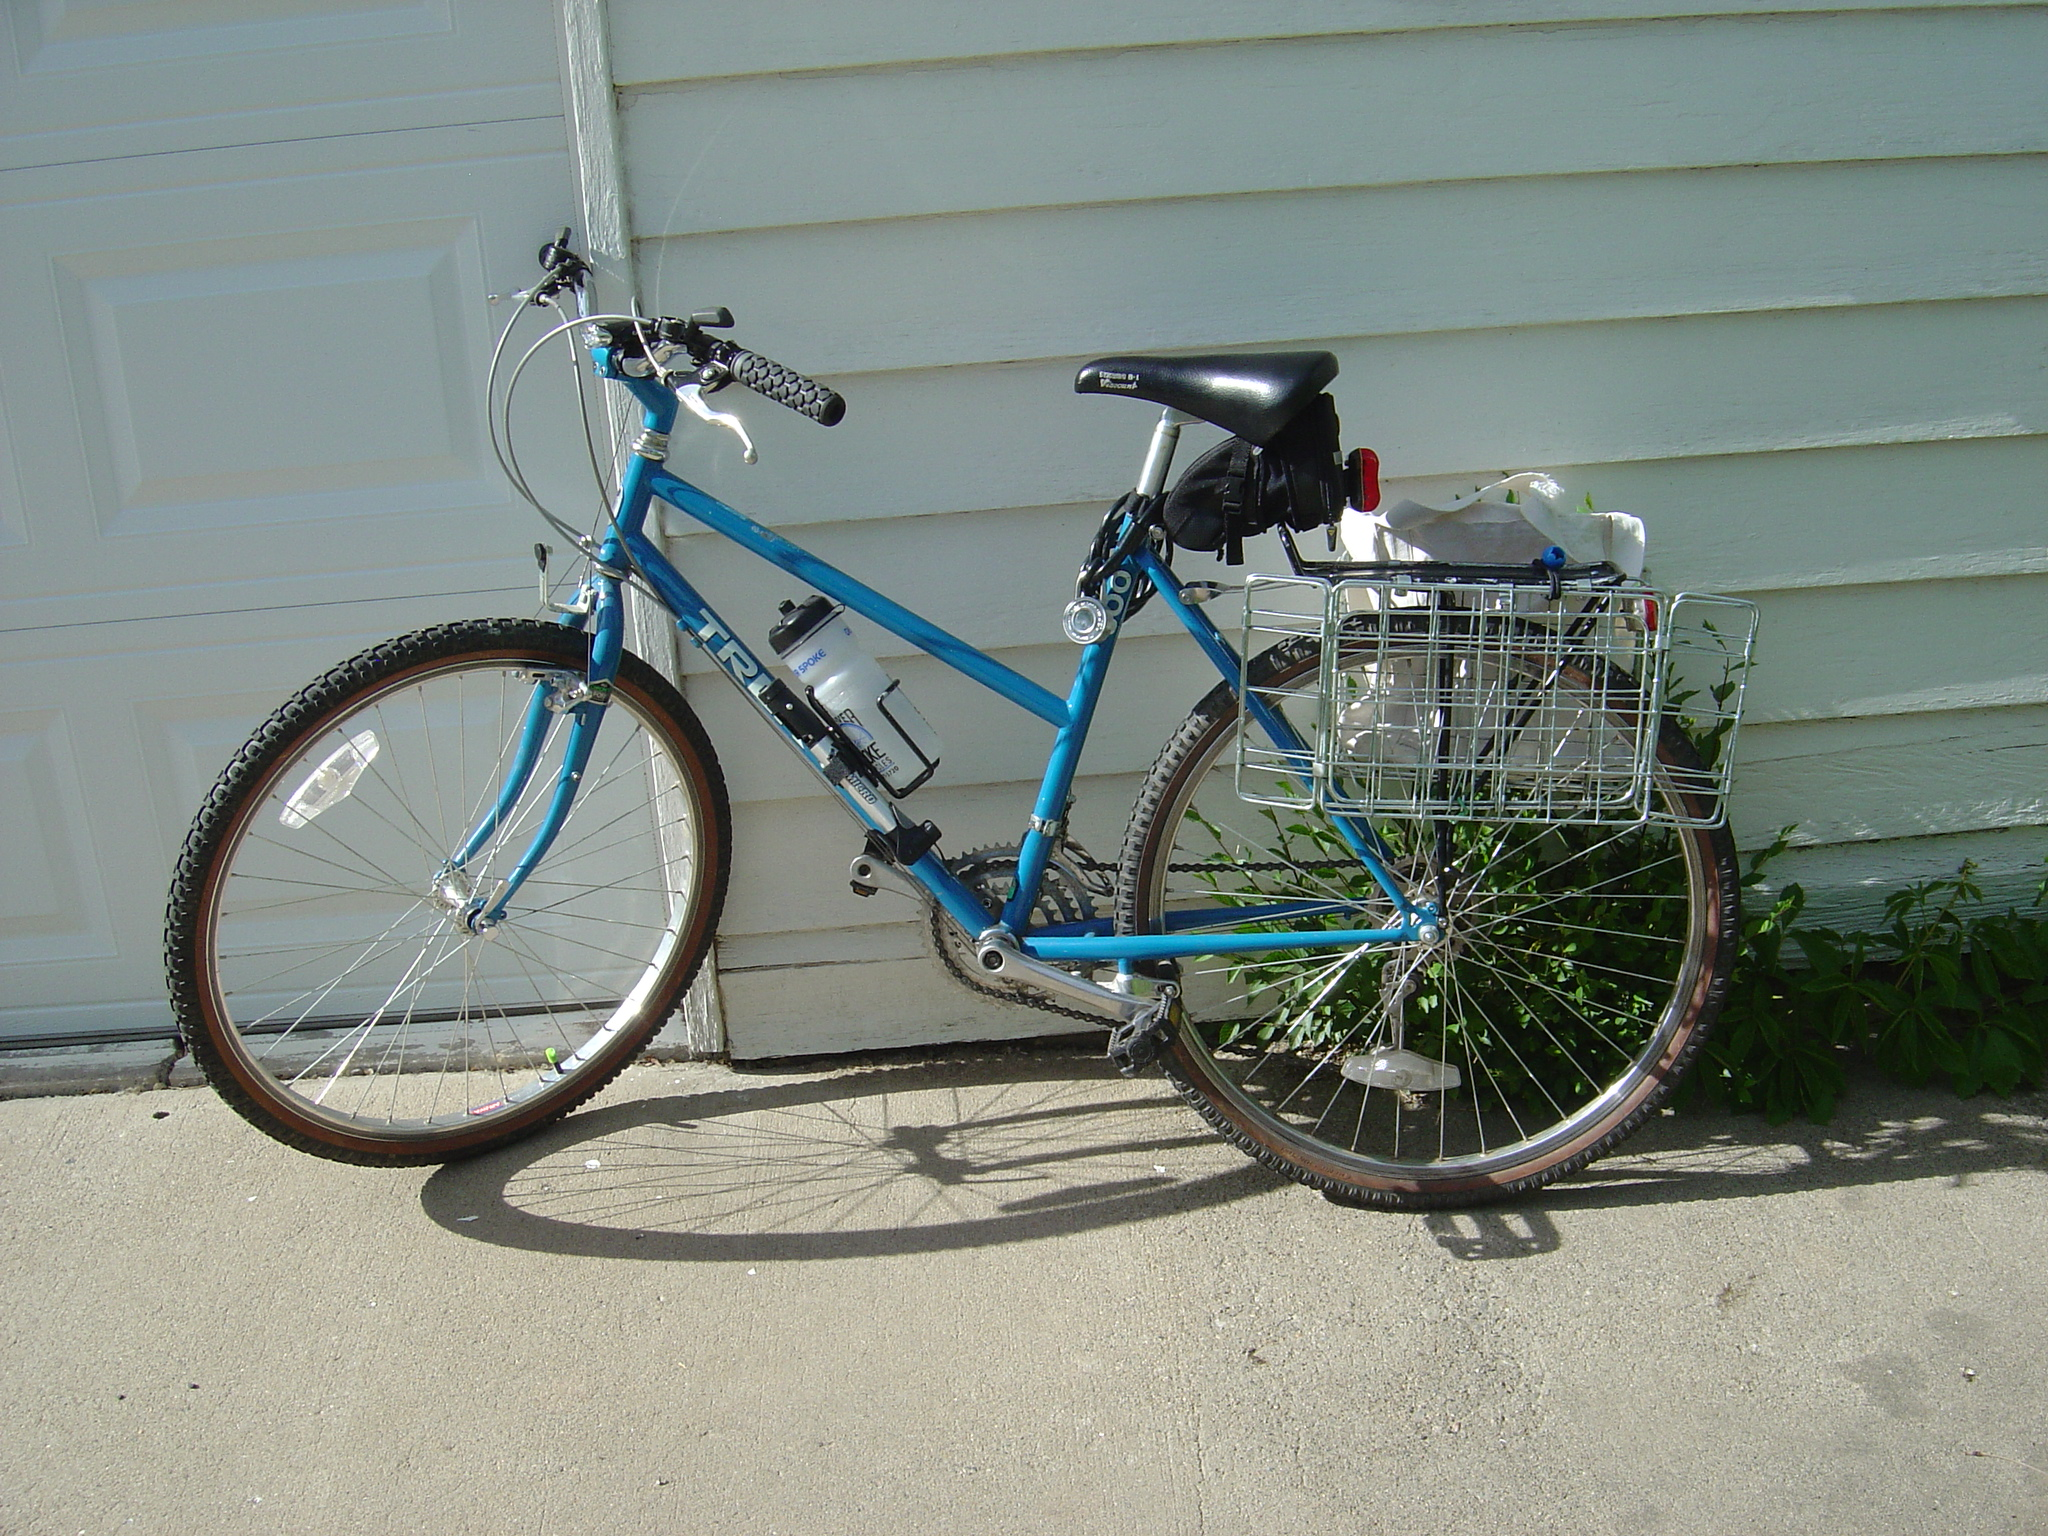 Bikes With Basket On Back with rear bike baskets